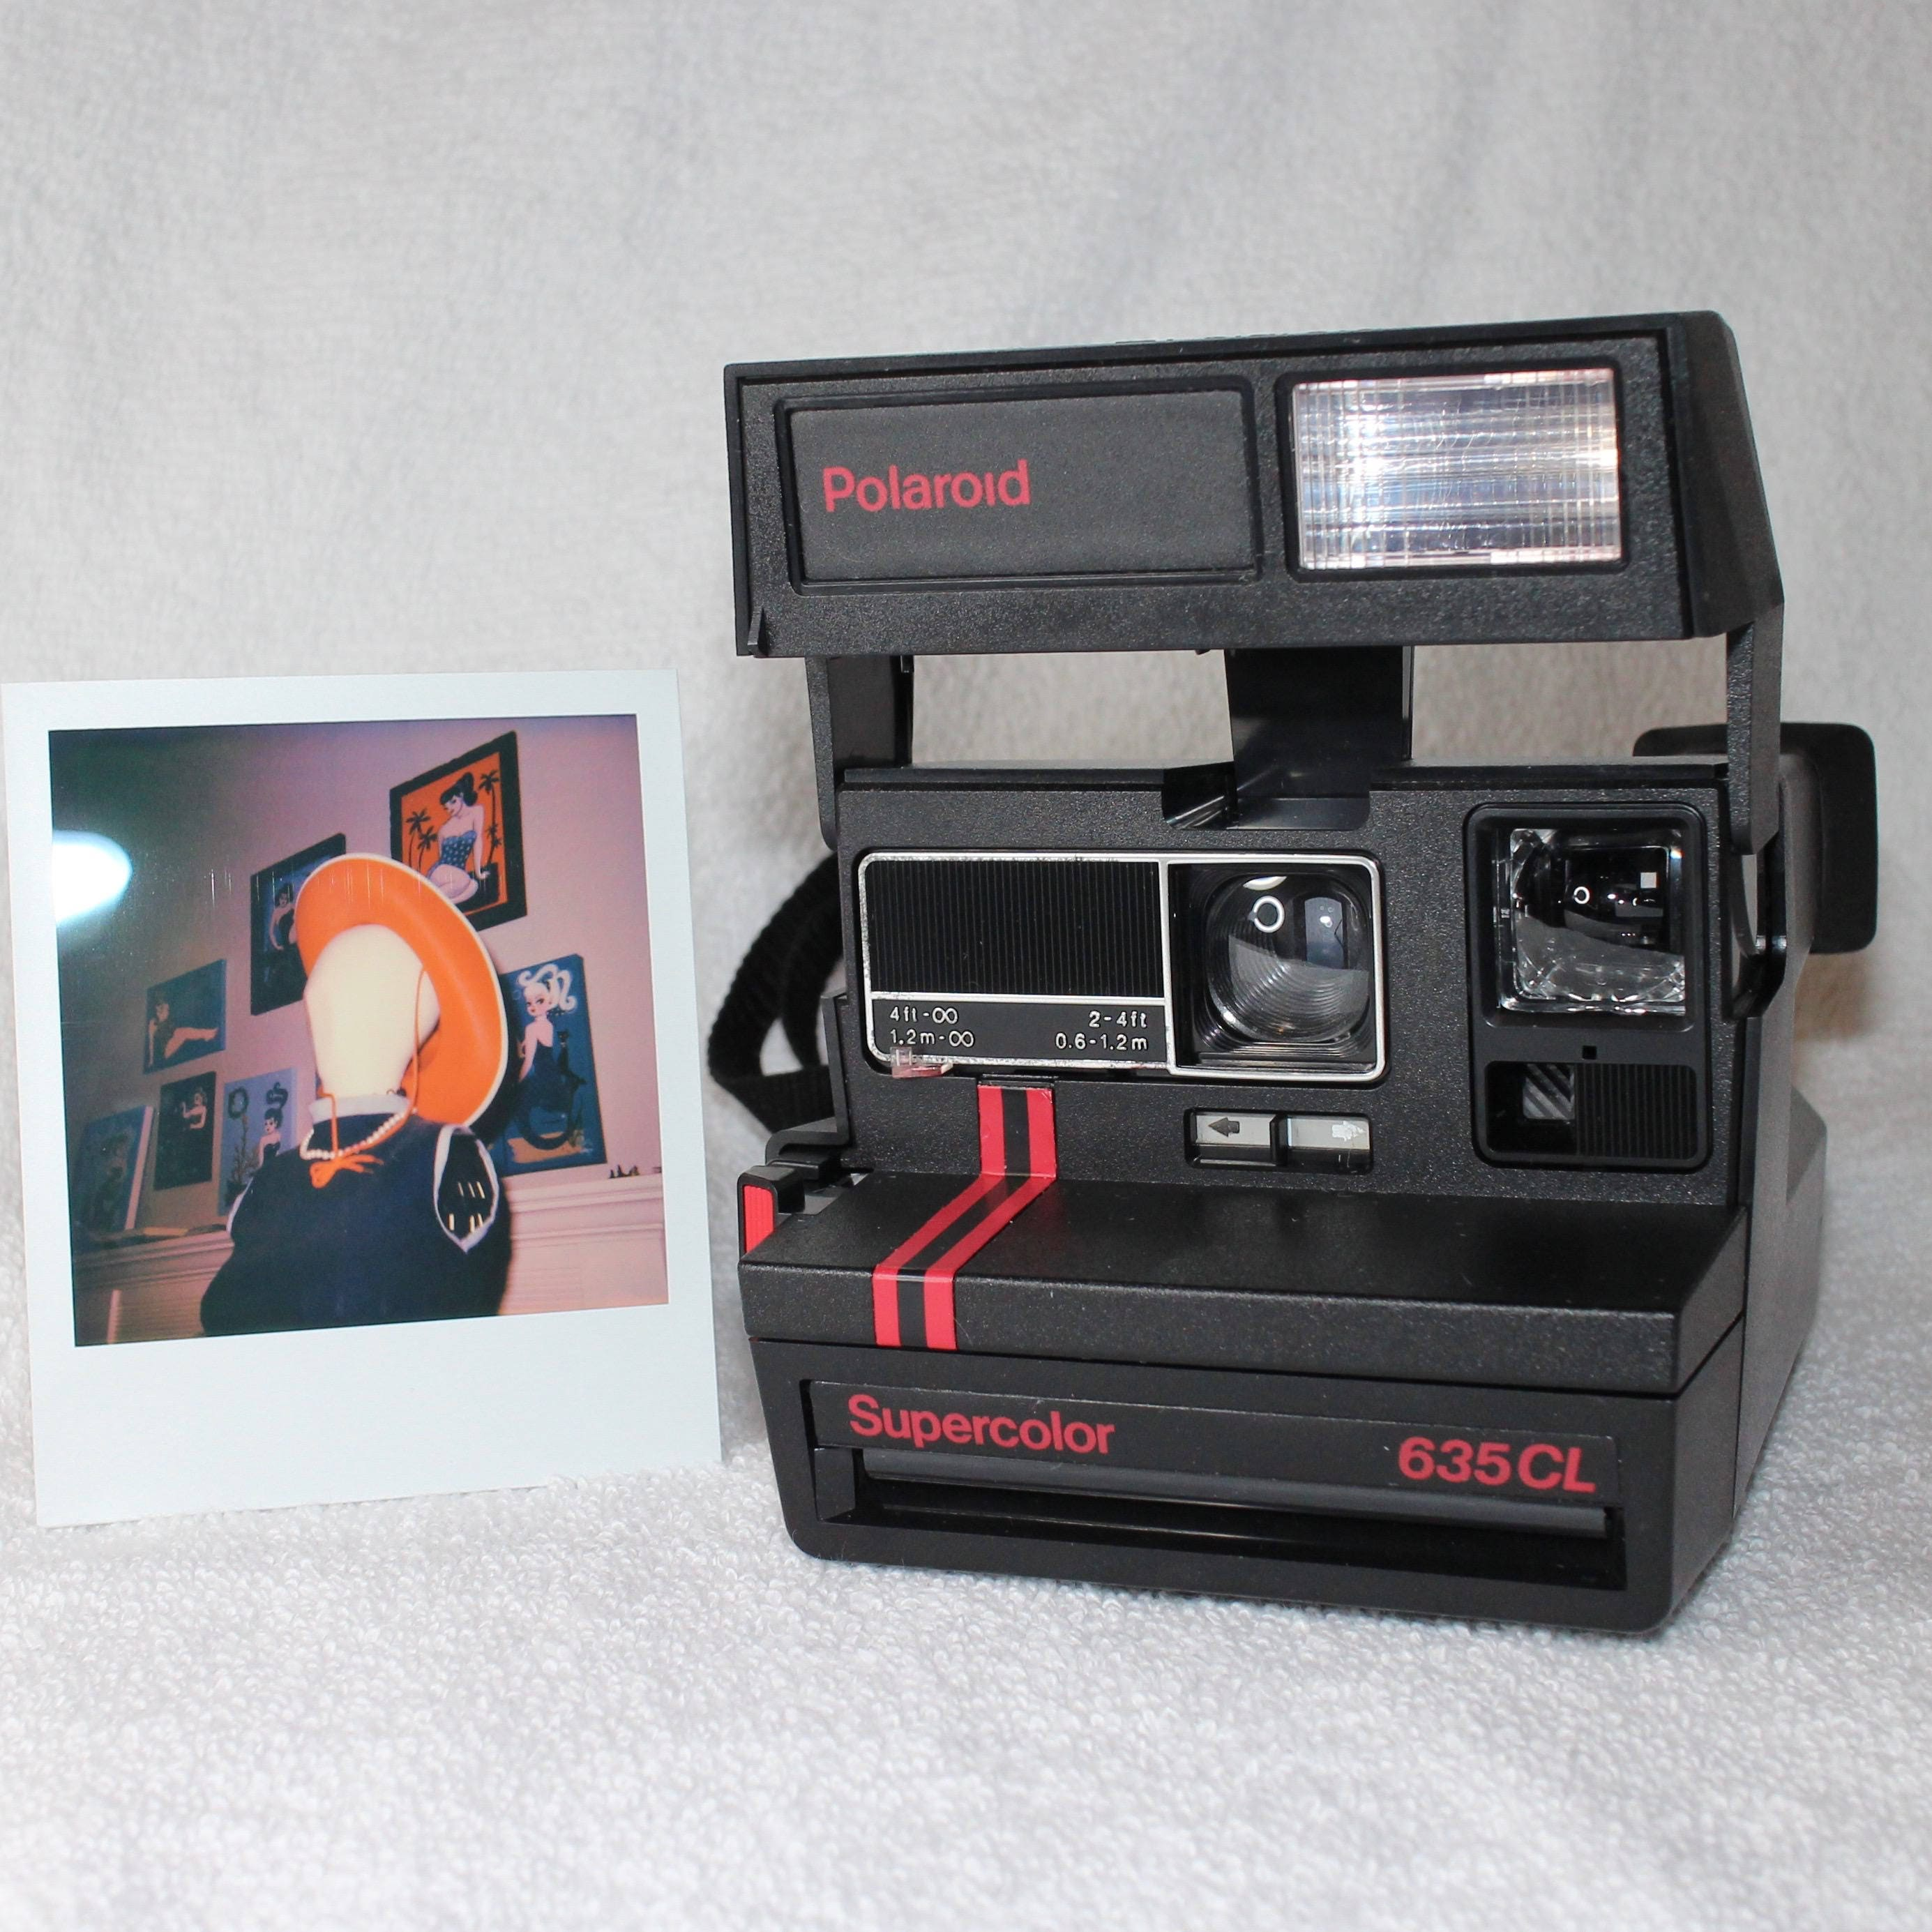 original dual stripe polaroid supercolor 635 cl works great tested and cleaned includes close. Black Bedroom Furniture Sets. Home Design Ideas